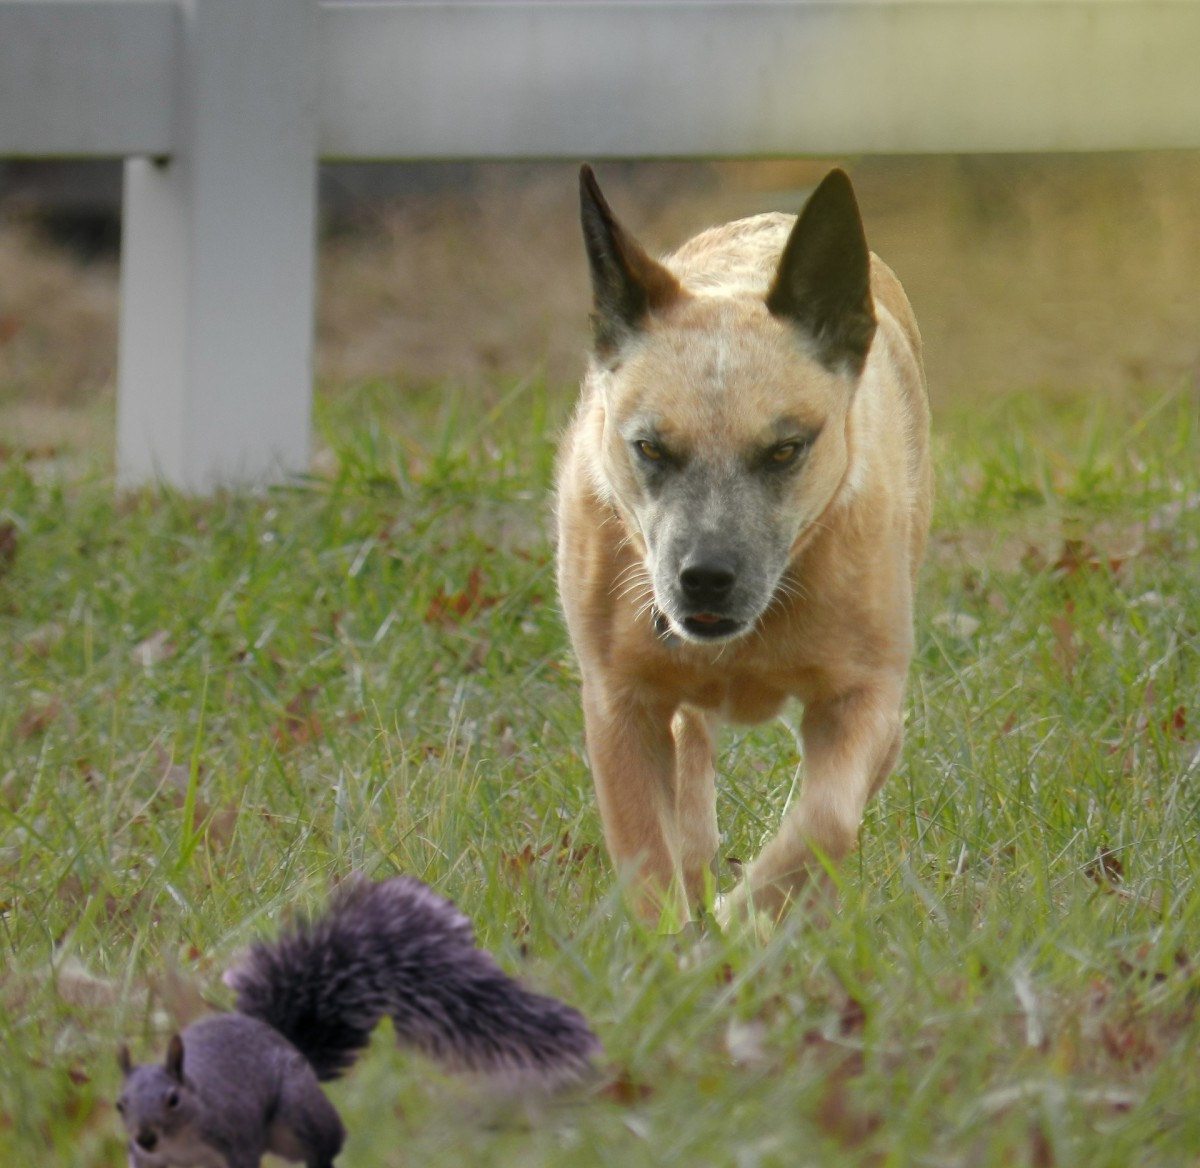 Are there critters in your yard?